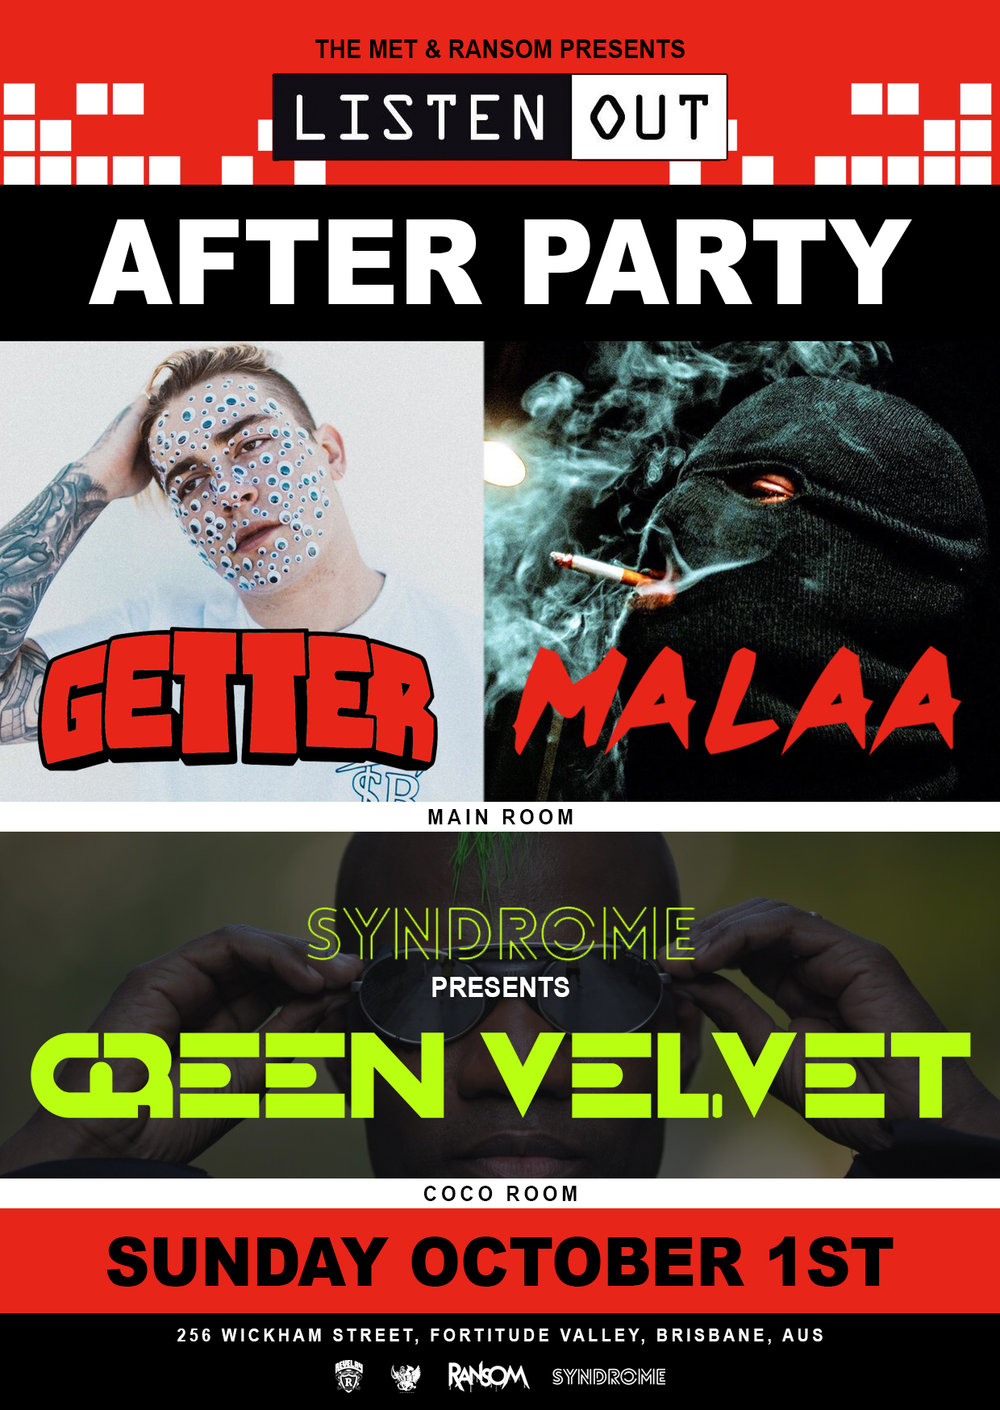 LISTEN-OUT-AFTER-PARTY2.jpg